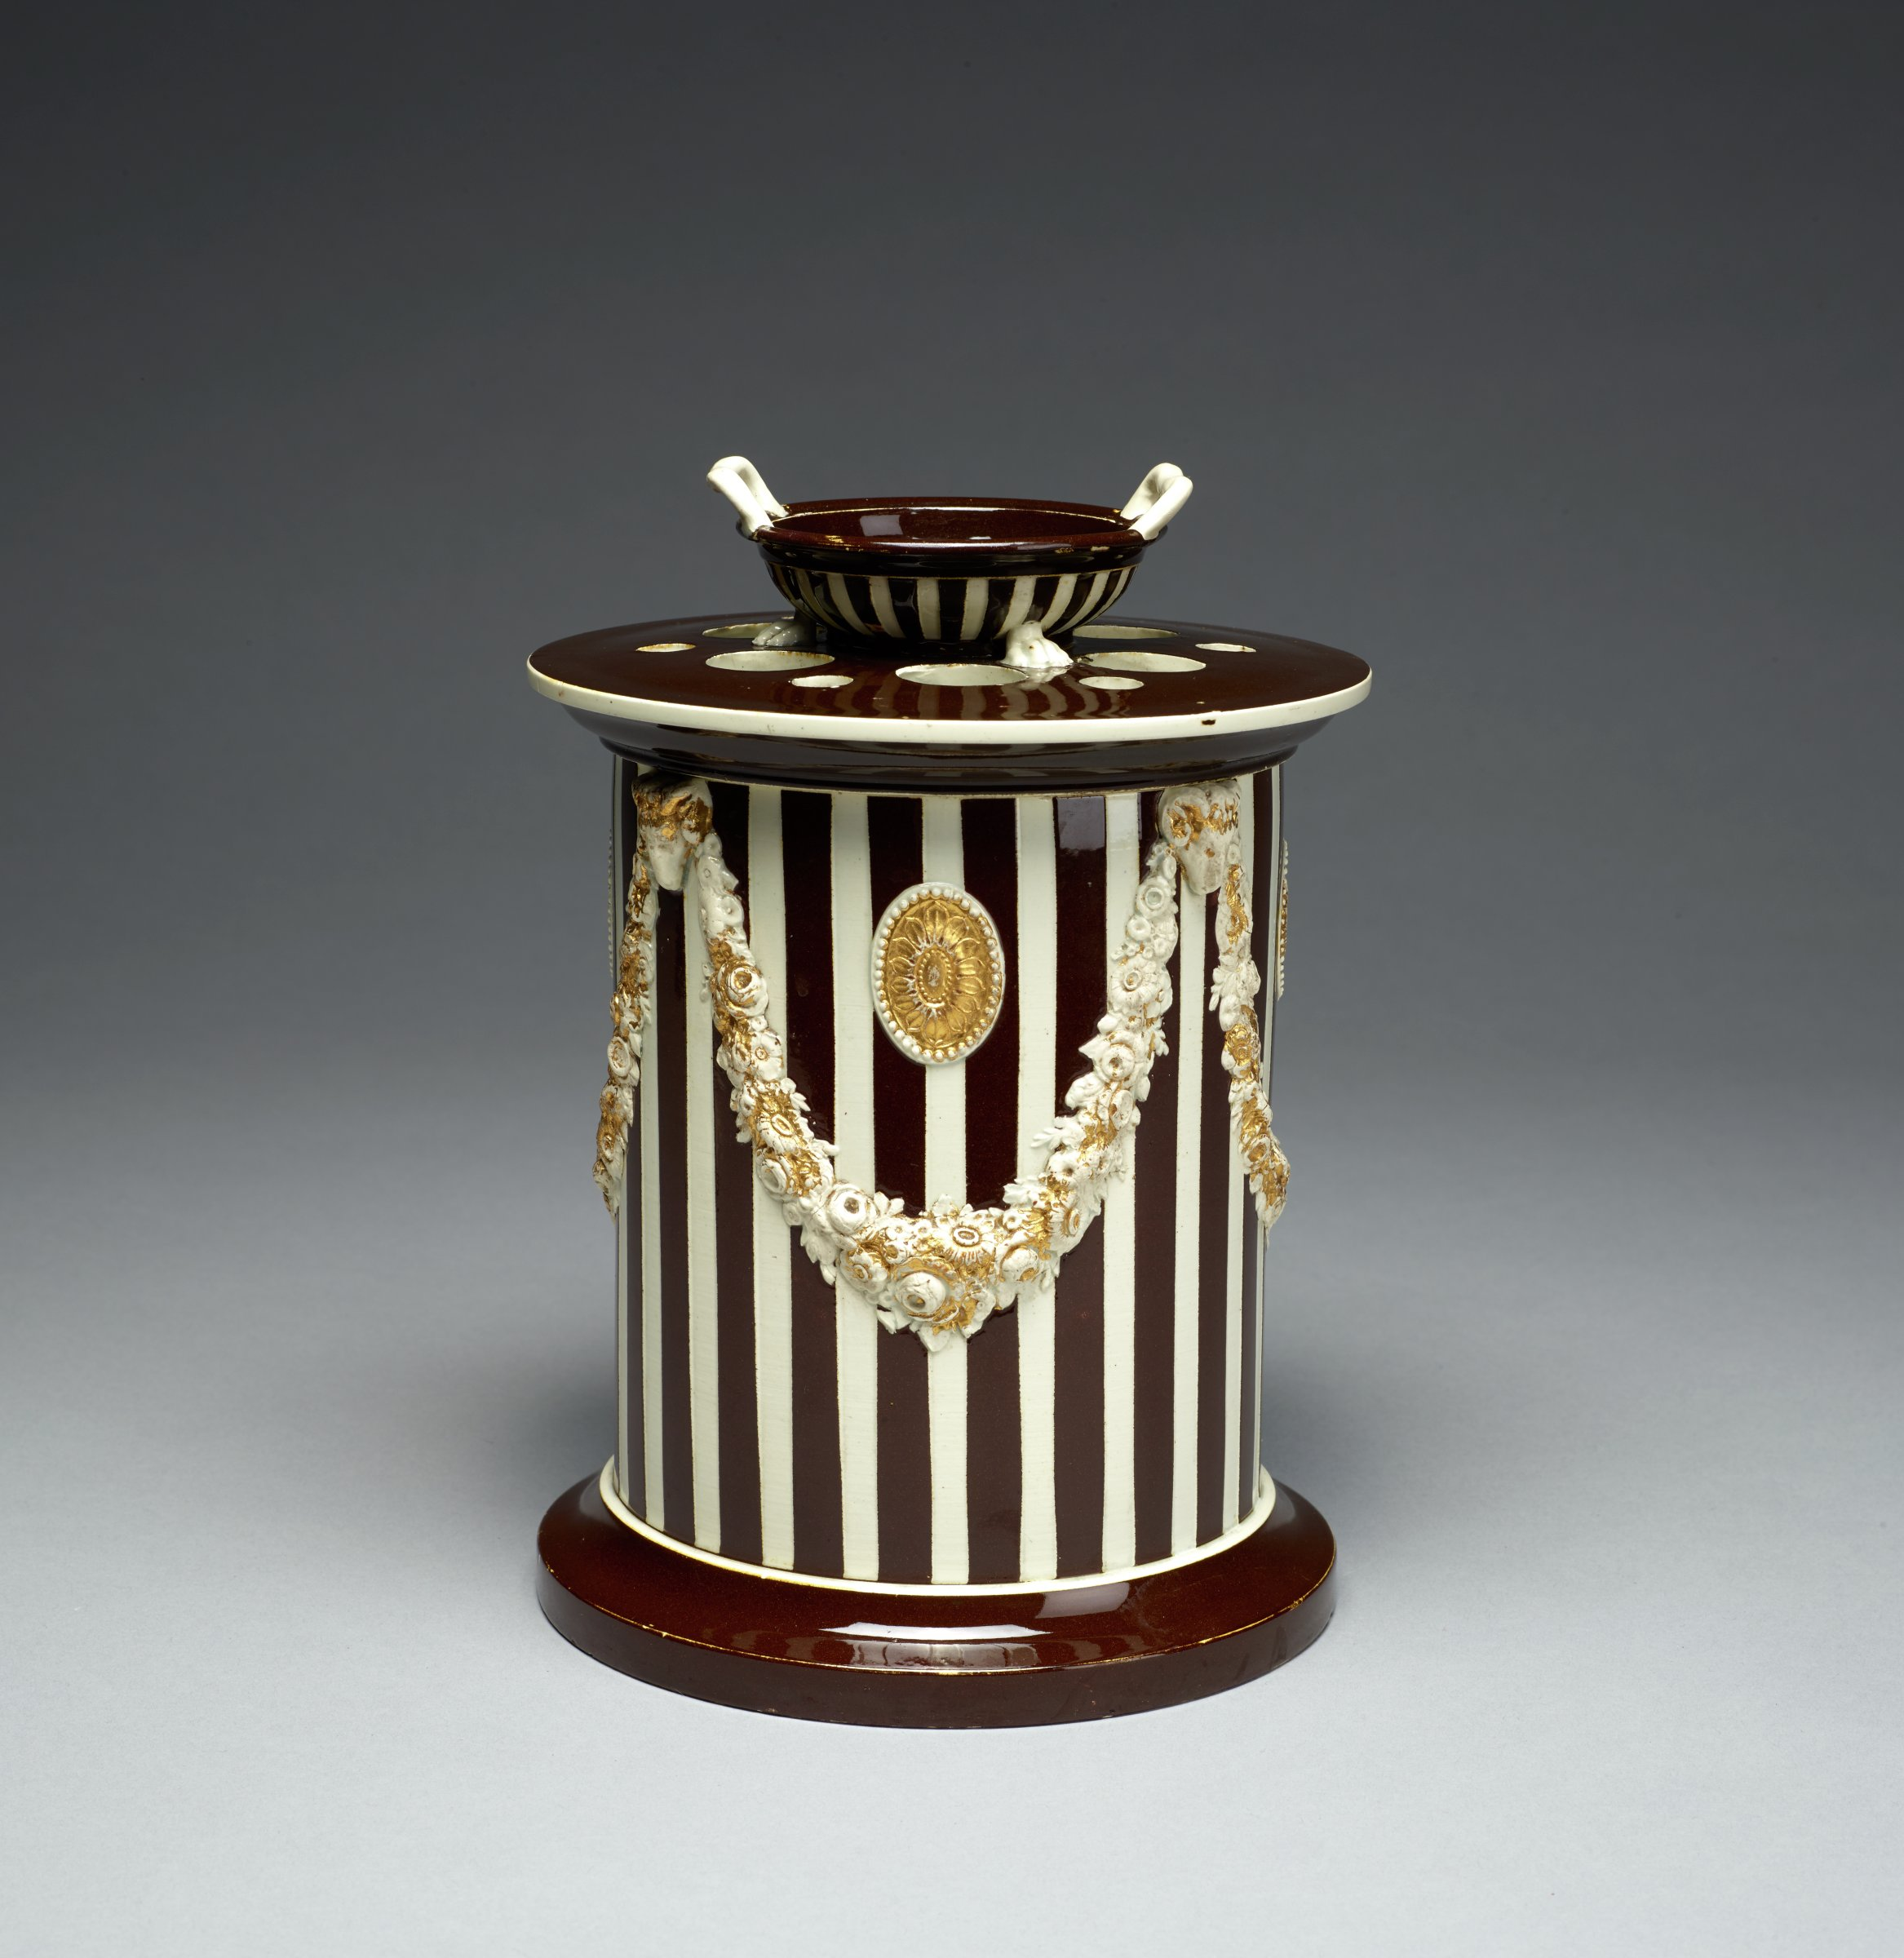 Censer, or incense burner, of white stoneware covered with brown glaze under a clear pearl glaze, drum shaped with a series of vertical white stripes around the body and gilt floral garlands held by rams' heads with gilt paterae between, with flat perforated cover with a central opening in the form of a two-handled bowl, likewise with vertical white stripes.